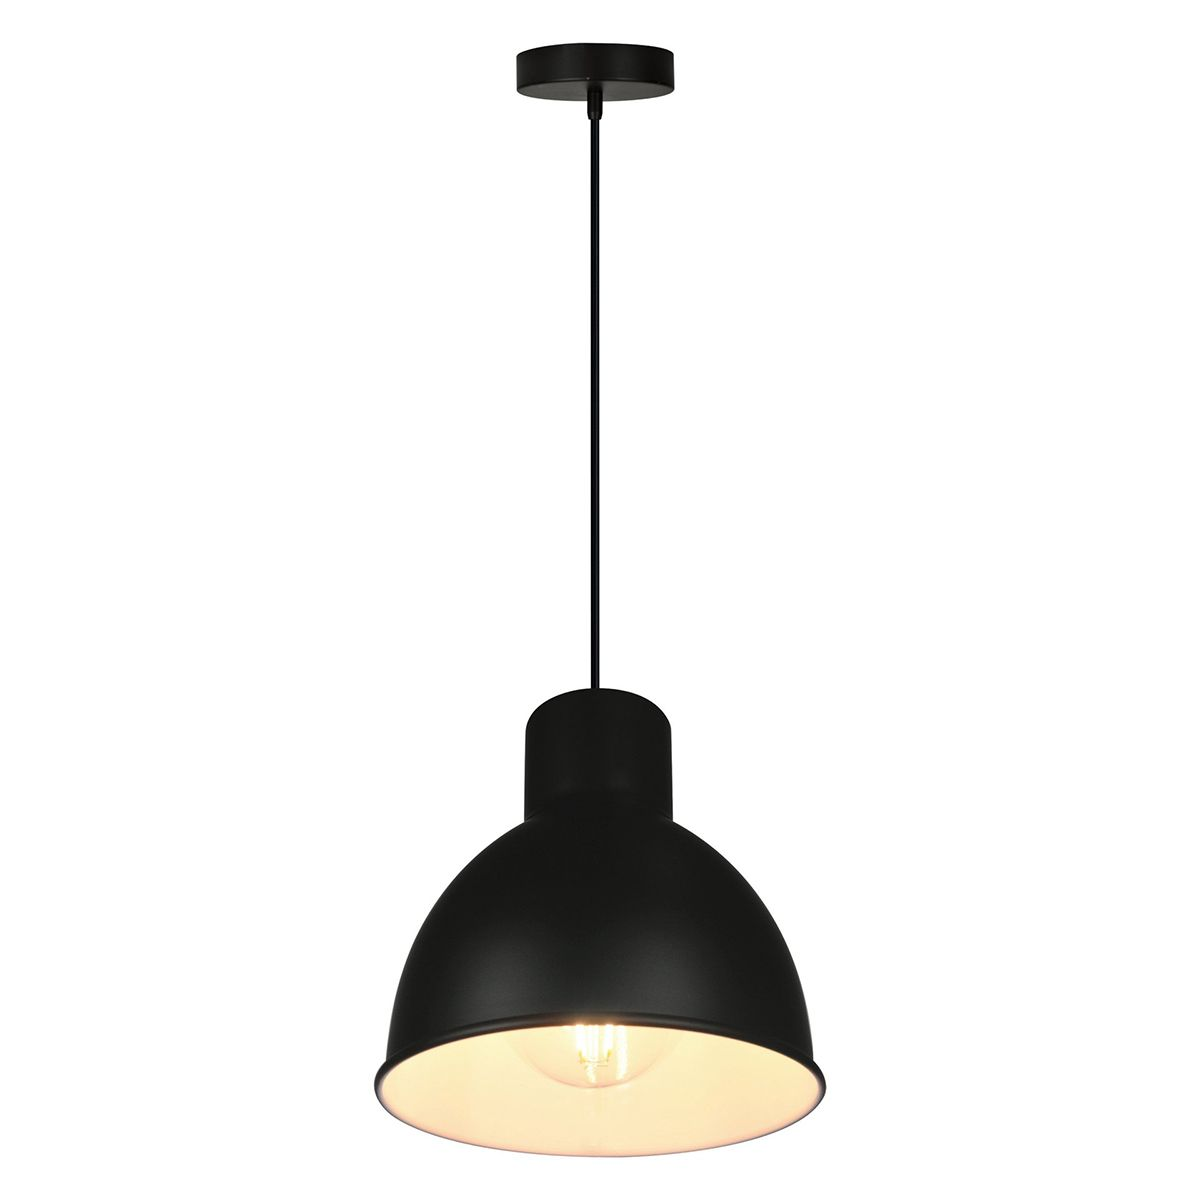 Suspension Noir Metal Suspension Cloche En Métal Noir Melga Inspire Decoclico